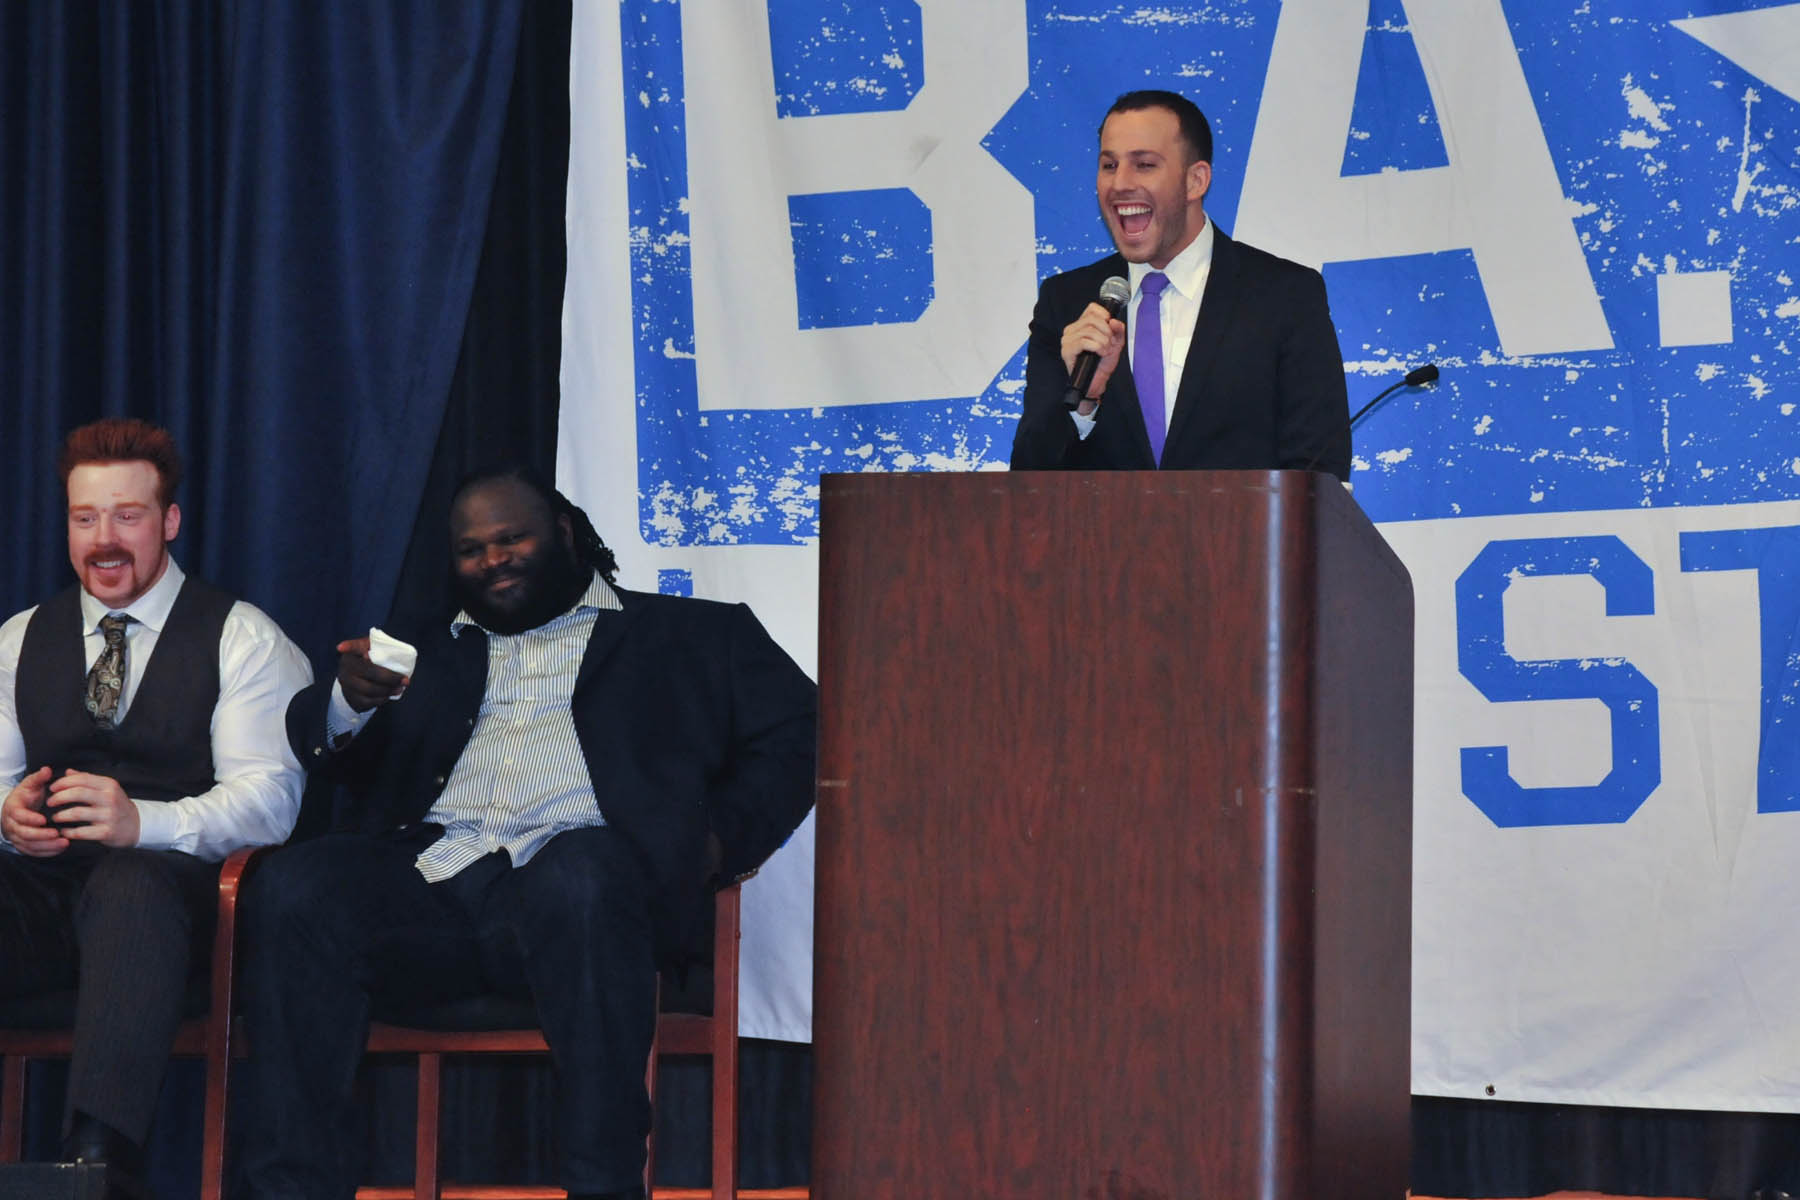 Sheamus Mark Henry Micah Jesse Speech WWE Creative Coalition Be A STAR Bronx Rally.JPG